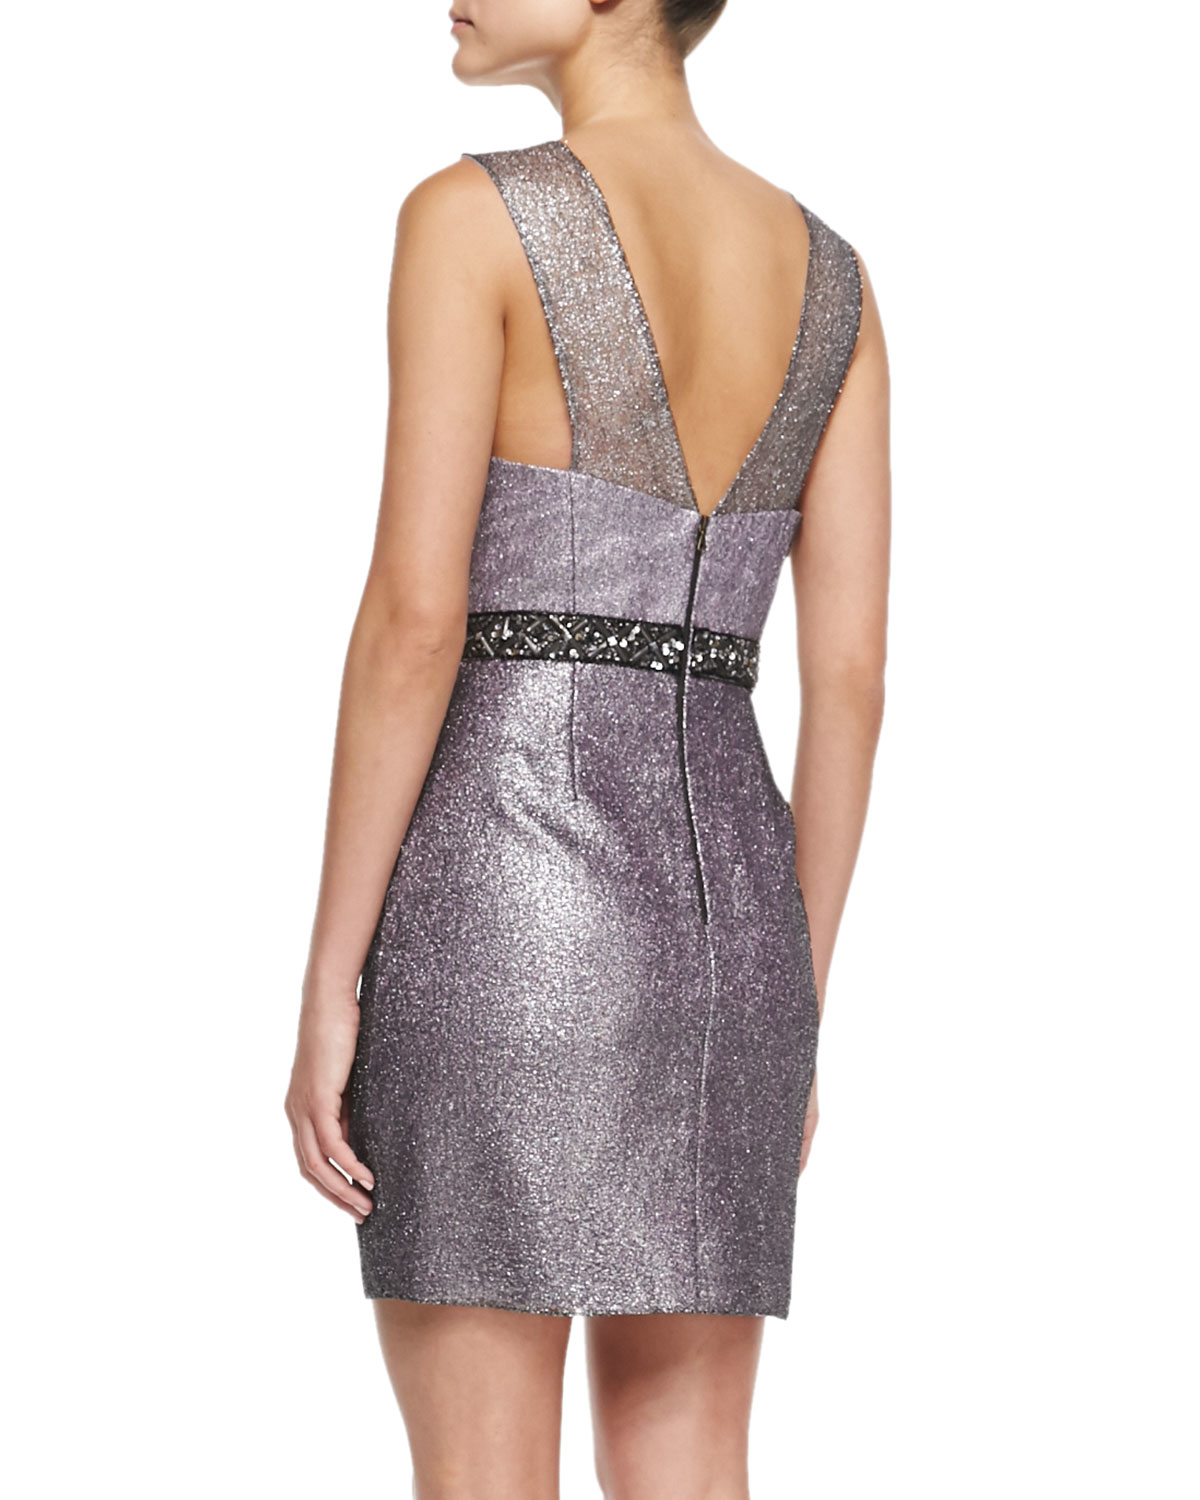 Kay J S By Kay Unger Sleeveless Beaded Waist Cocktail